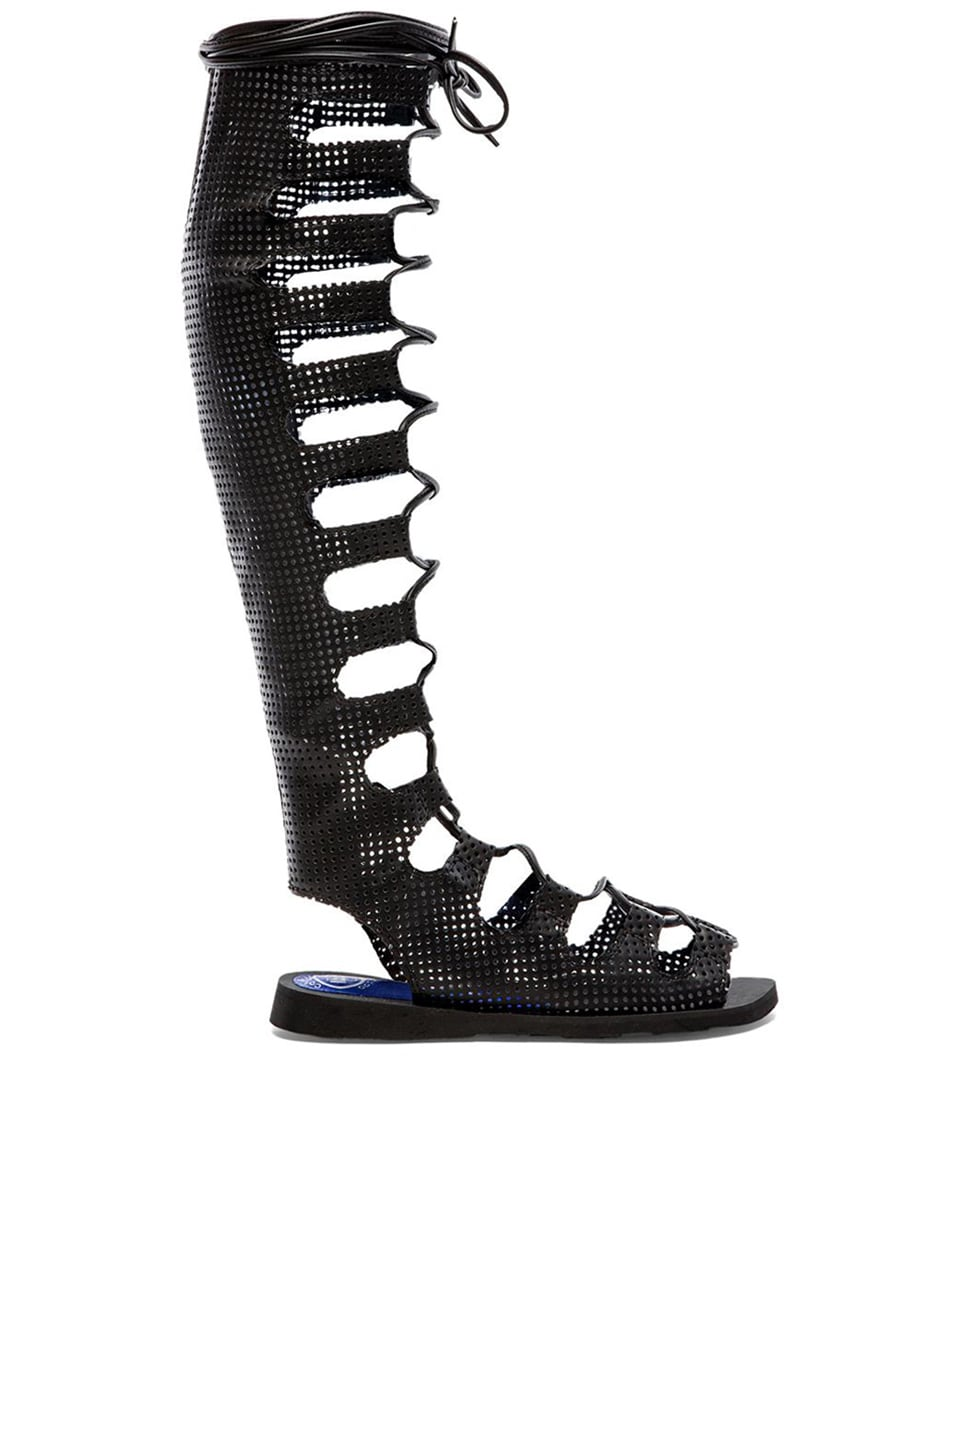 Jeffrey Campbell Olympus Gladiator Sandals in Black Punch